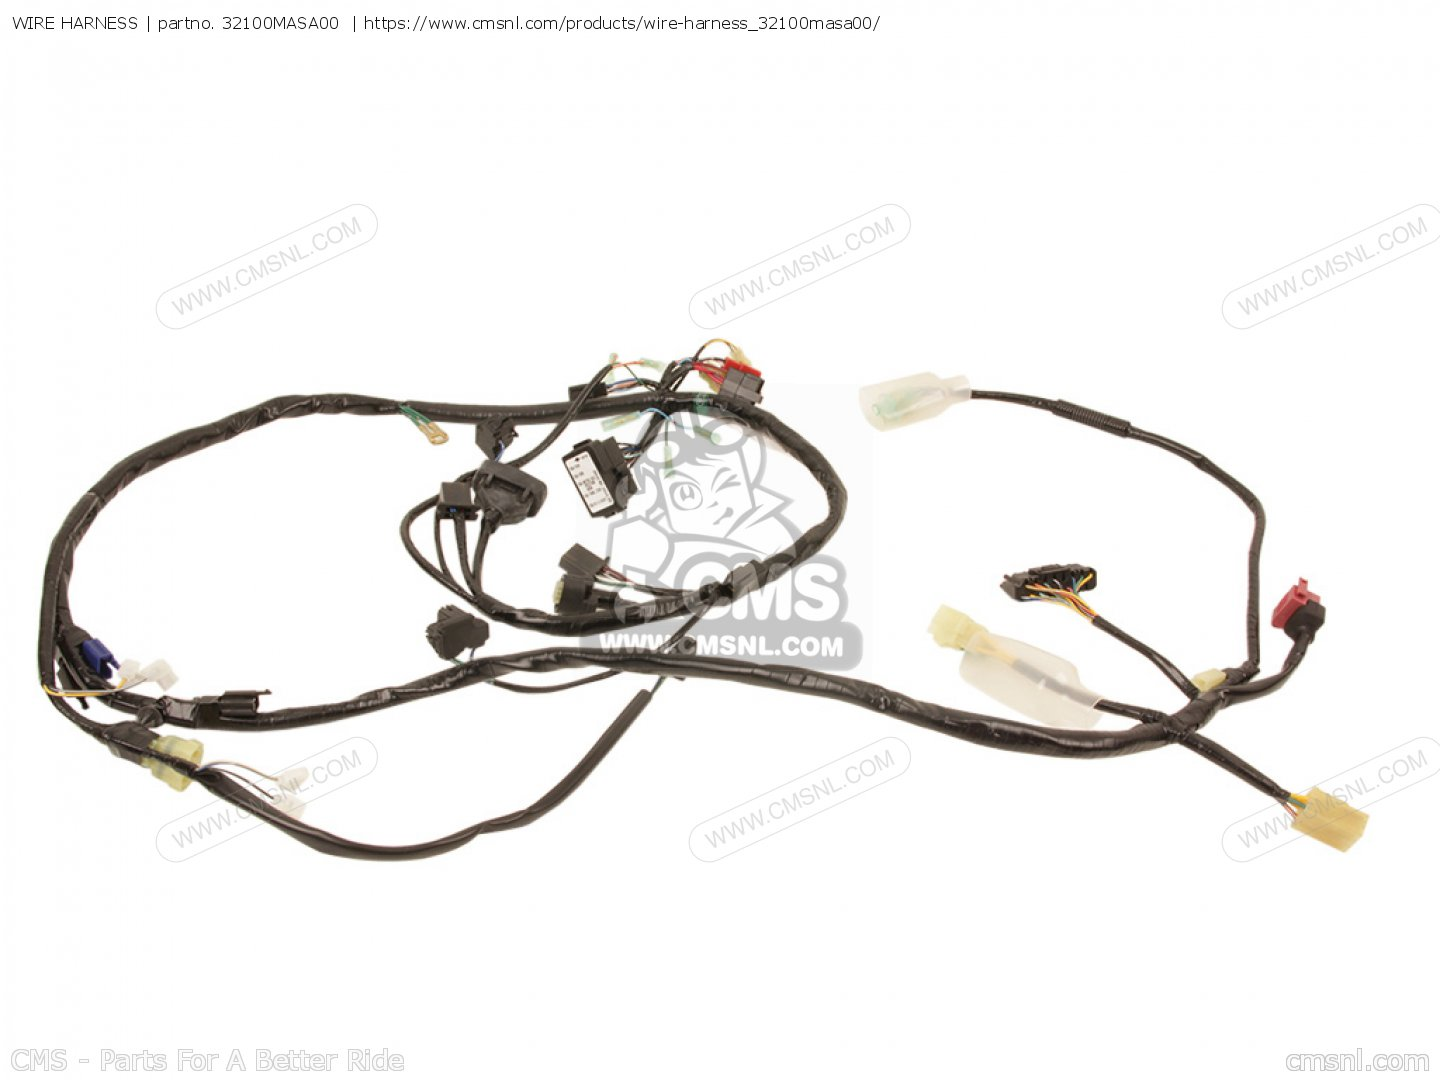 hight resolution of 32100masa00 wire harness honda buy the 32100 mas a00 at cmsnl wire harness